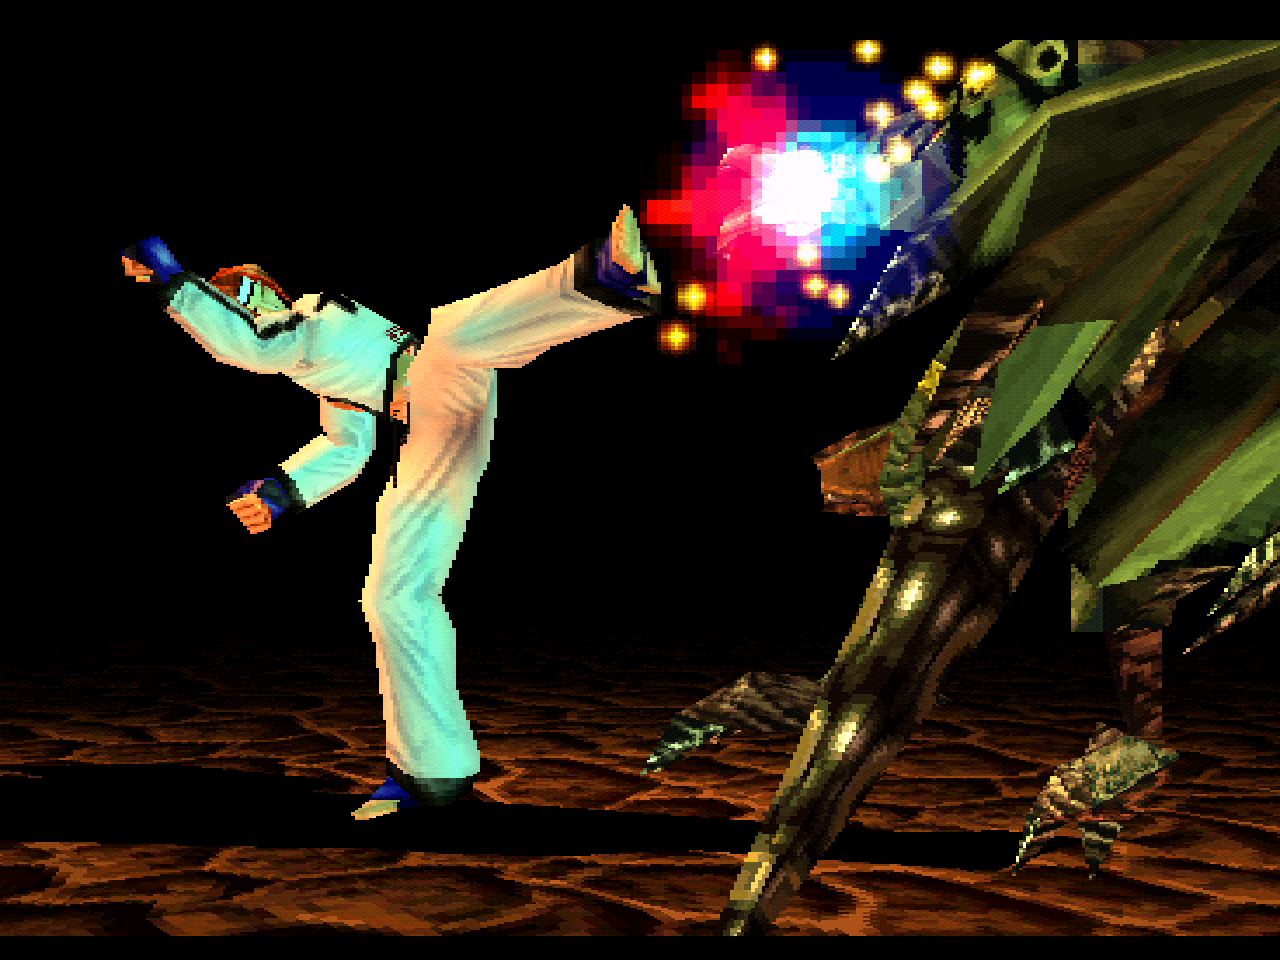 https://s3.eu-west-3.amazonaws.com/games.anthony-dessalles.com/Tekken 3 PS1 2020 - Screenshots/Tekken 3-201203-214211.png